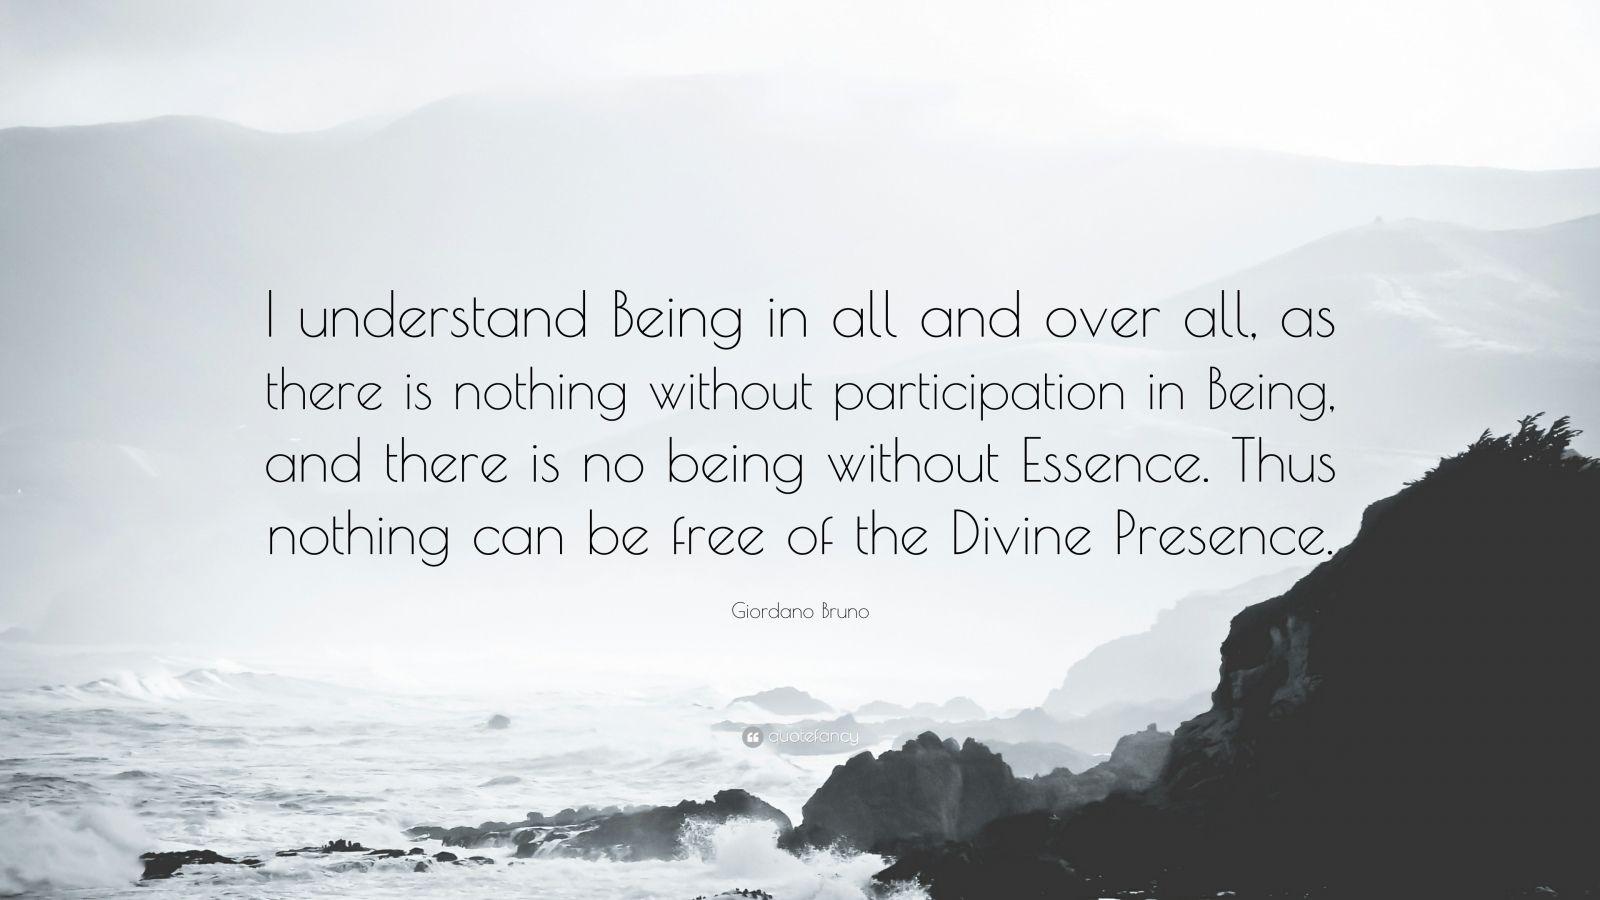 """Giordano Bruno Quote: """"I understand Being in all and over all, as there is nothing without participation in Being, and there is no being without Essence. Thus nothing can be free of the Divine Presence."""""""